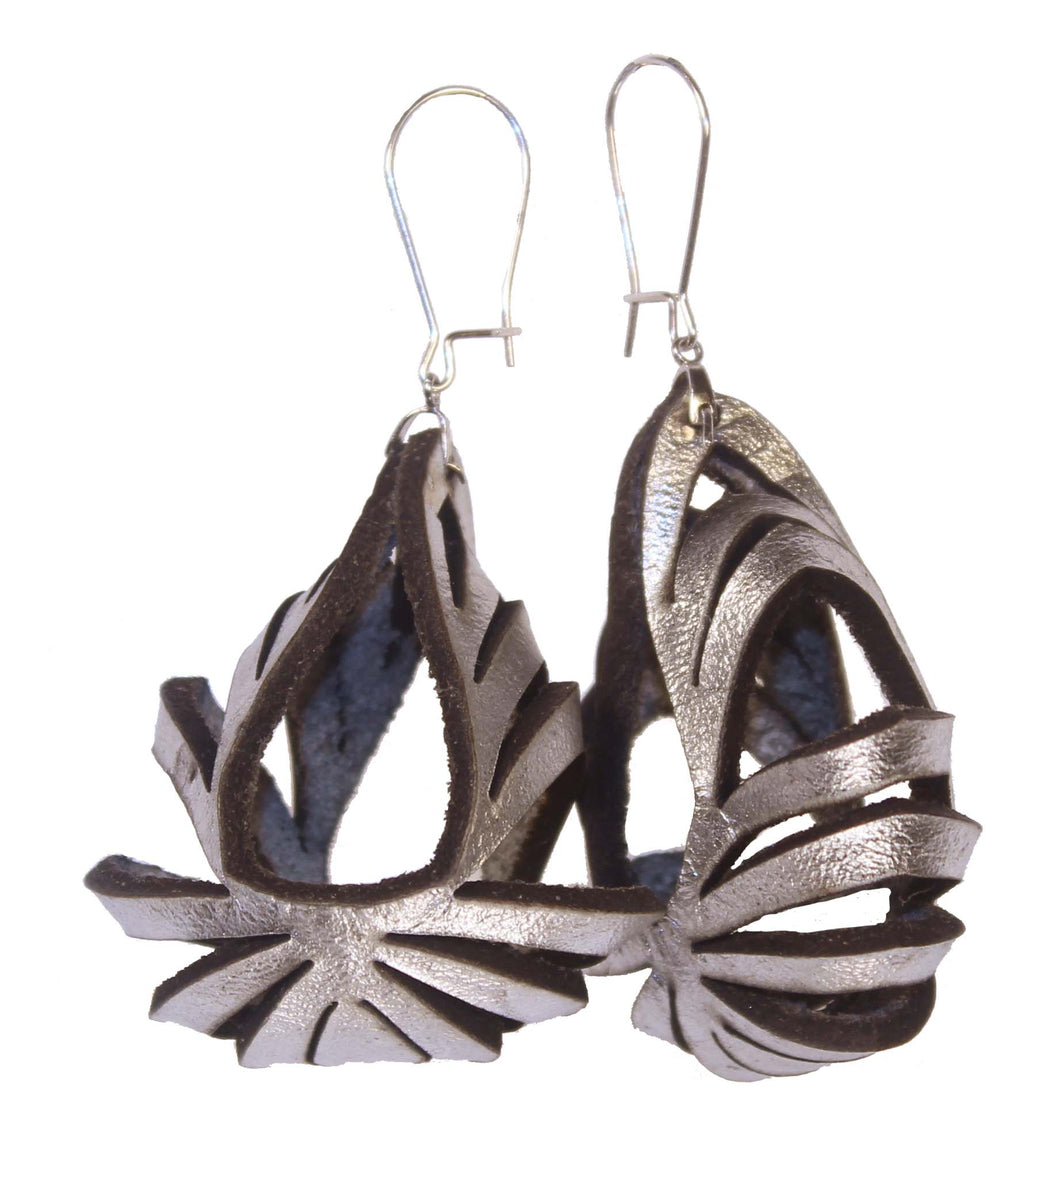 Ava Medium Metallic Leather Earrings - Silver